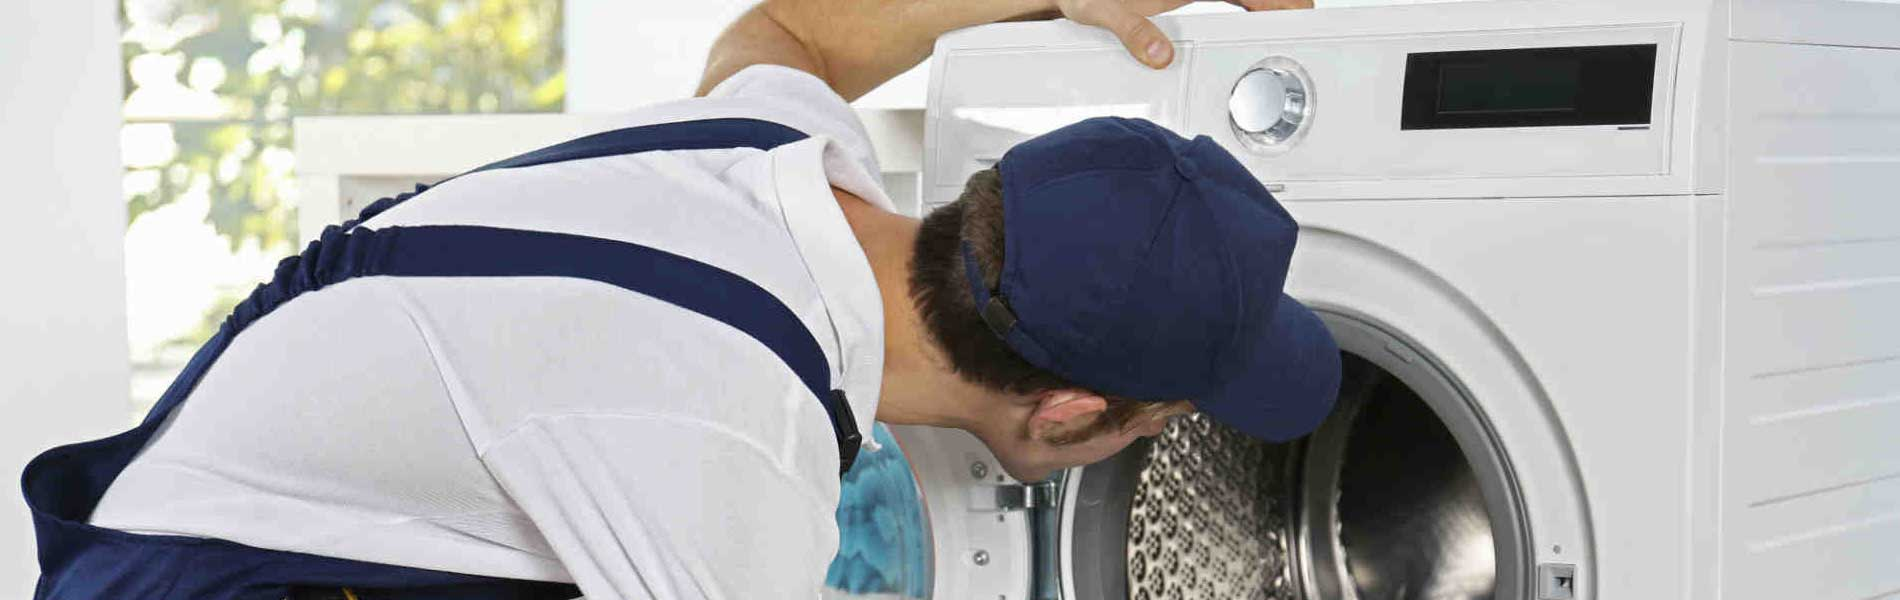 LG Washing Machine Mechanic in Manali